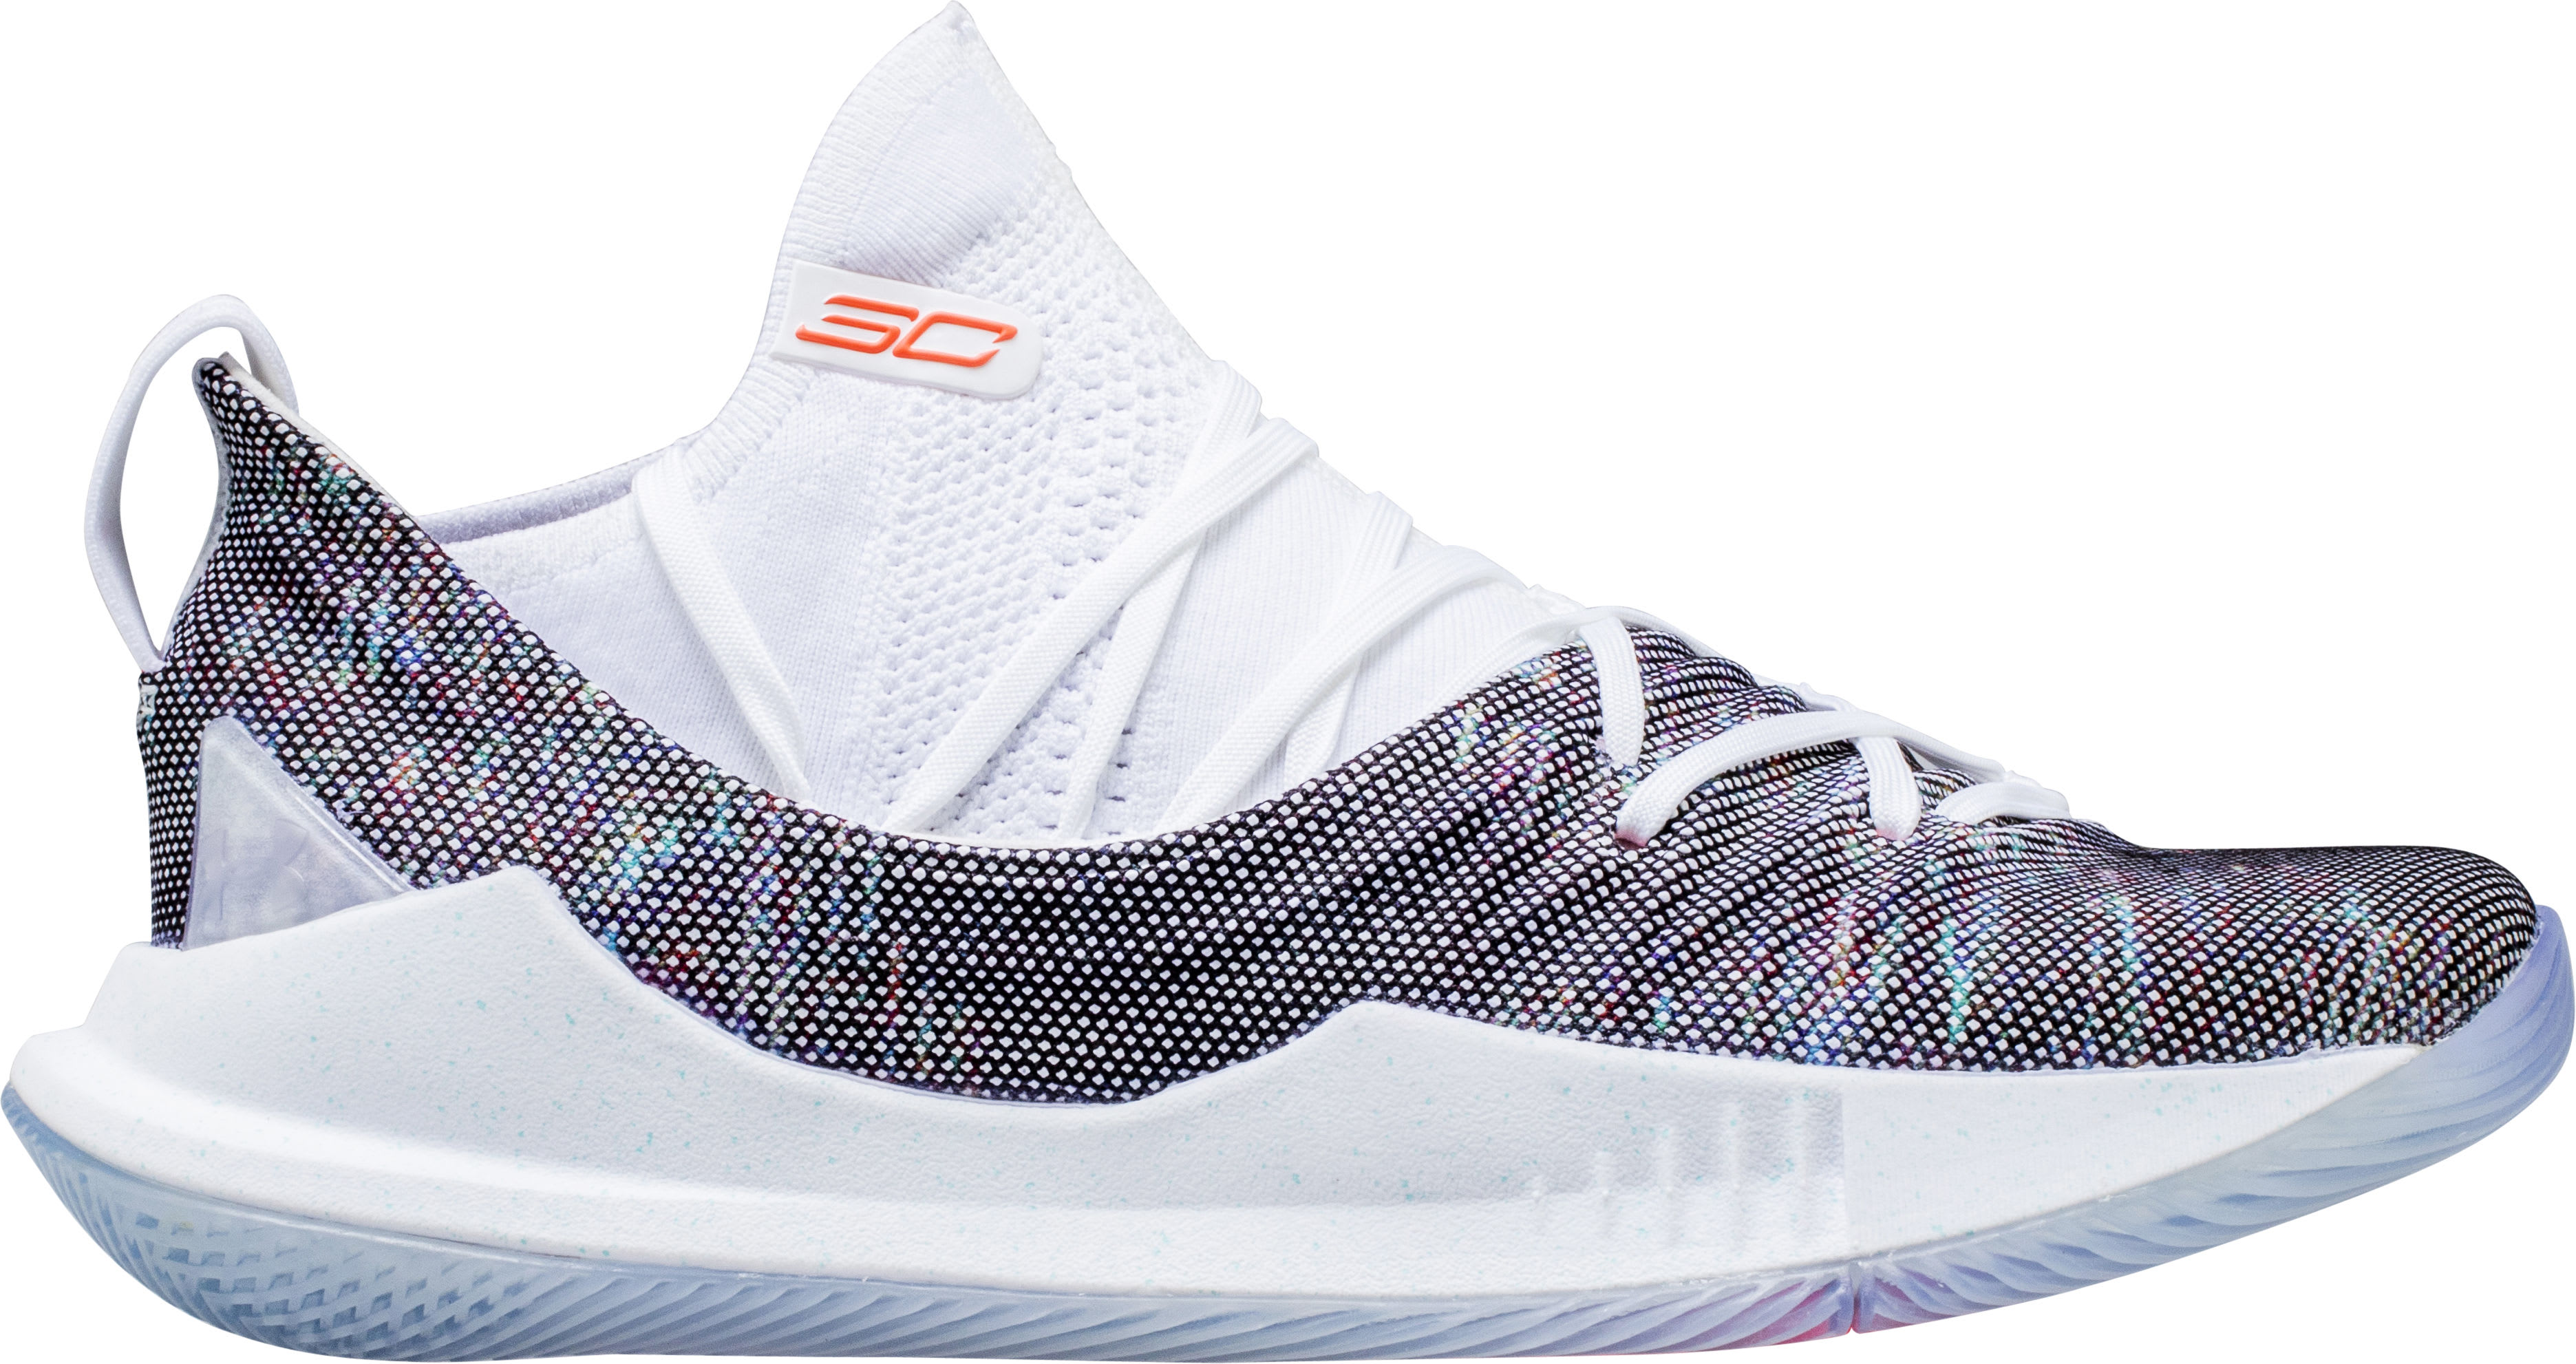 Under Armour Curry 5 'Welcome Home' (Lateral)